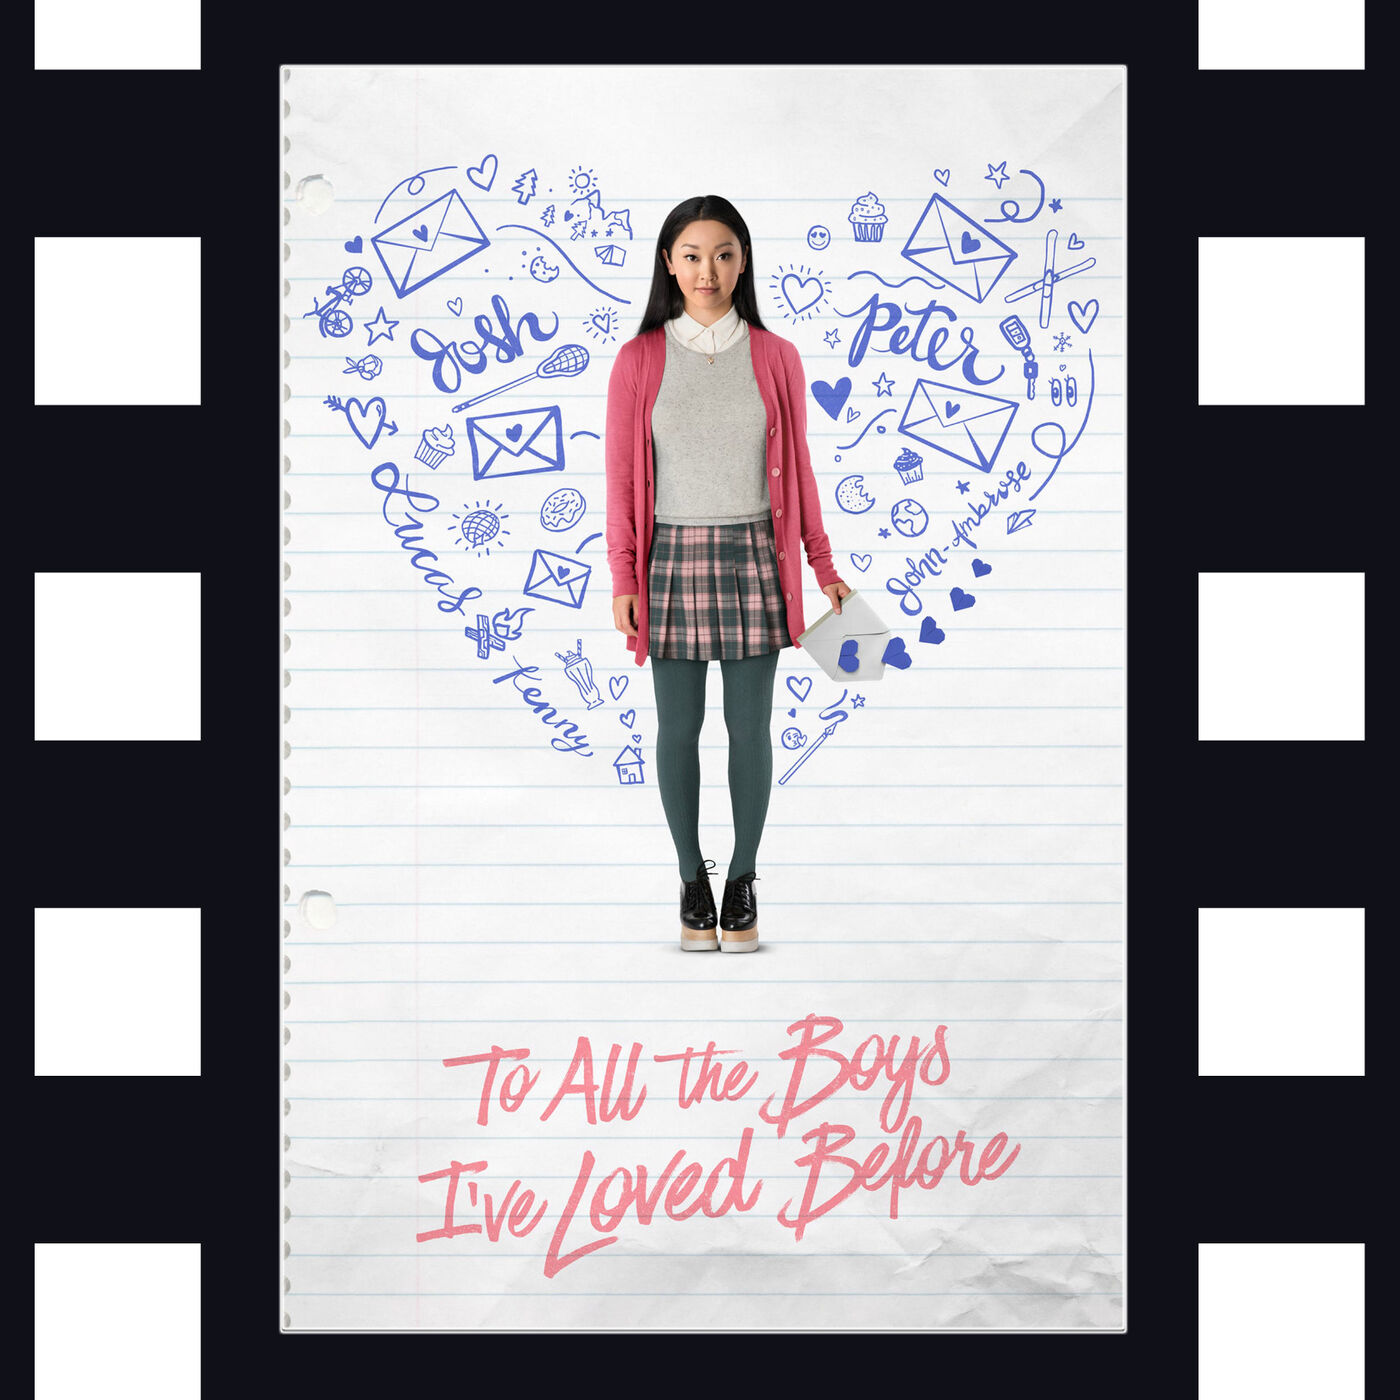 To All the Boys I've Loved Before - The Teen Drama/Dating/Romance Episode